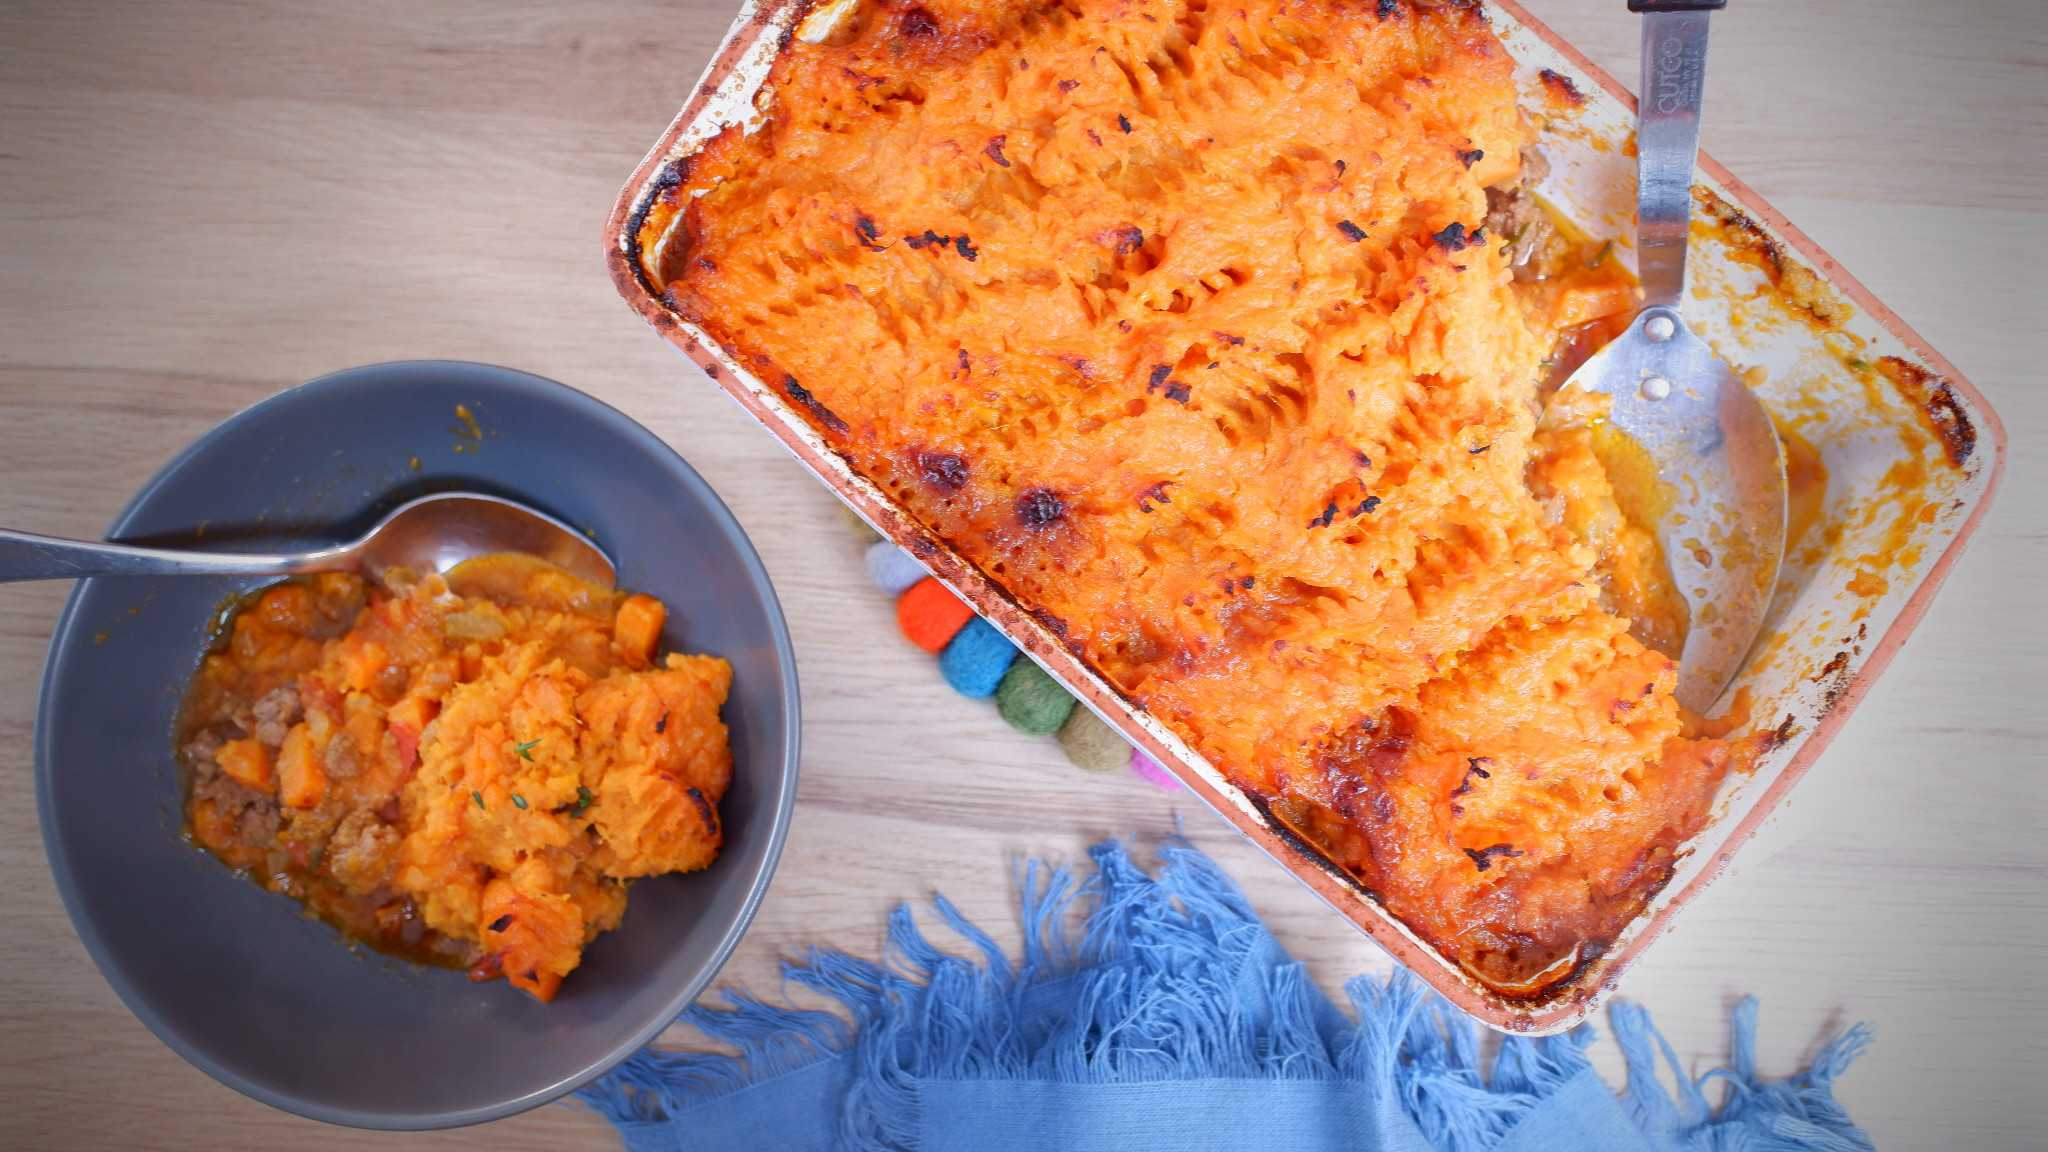 9Honey Quarantine Kitchen: That's classic shepherd's pie with a sweet potato twist